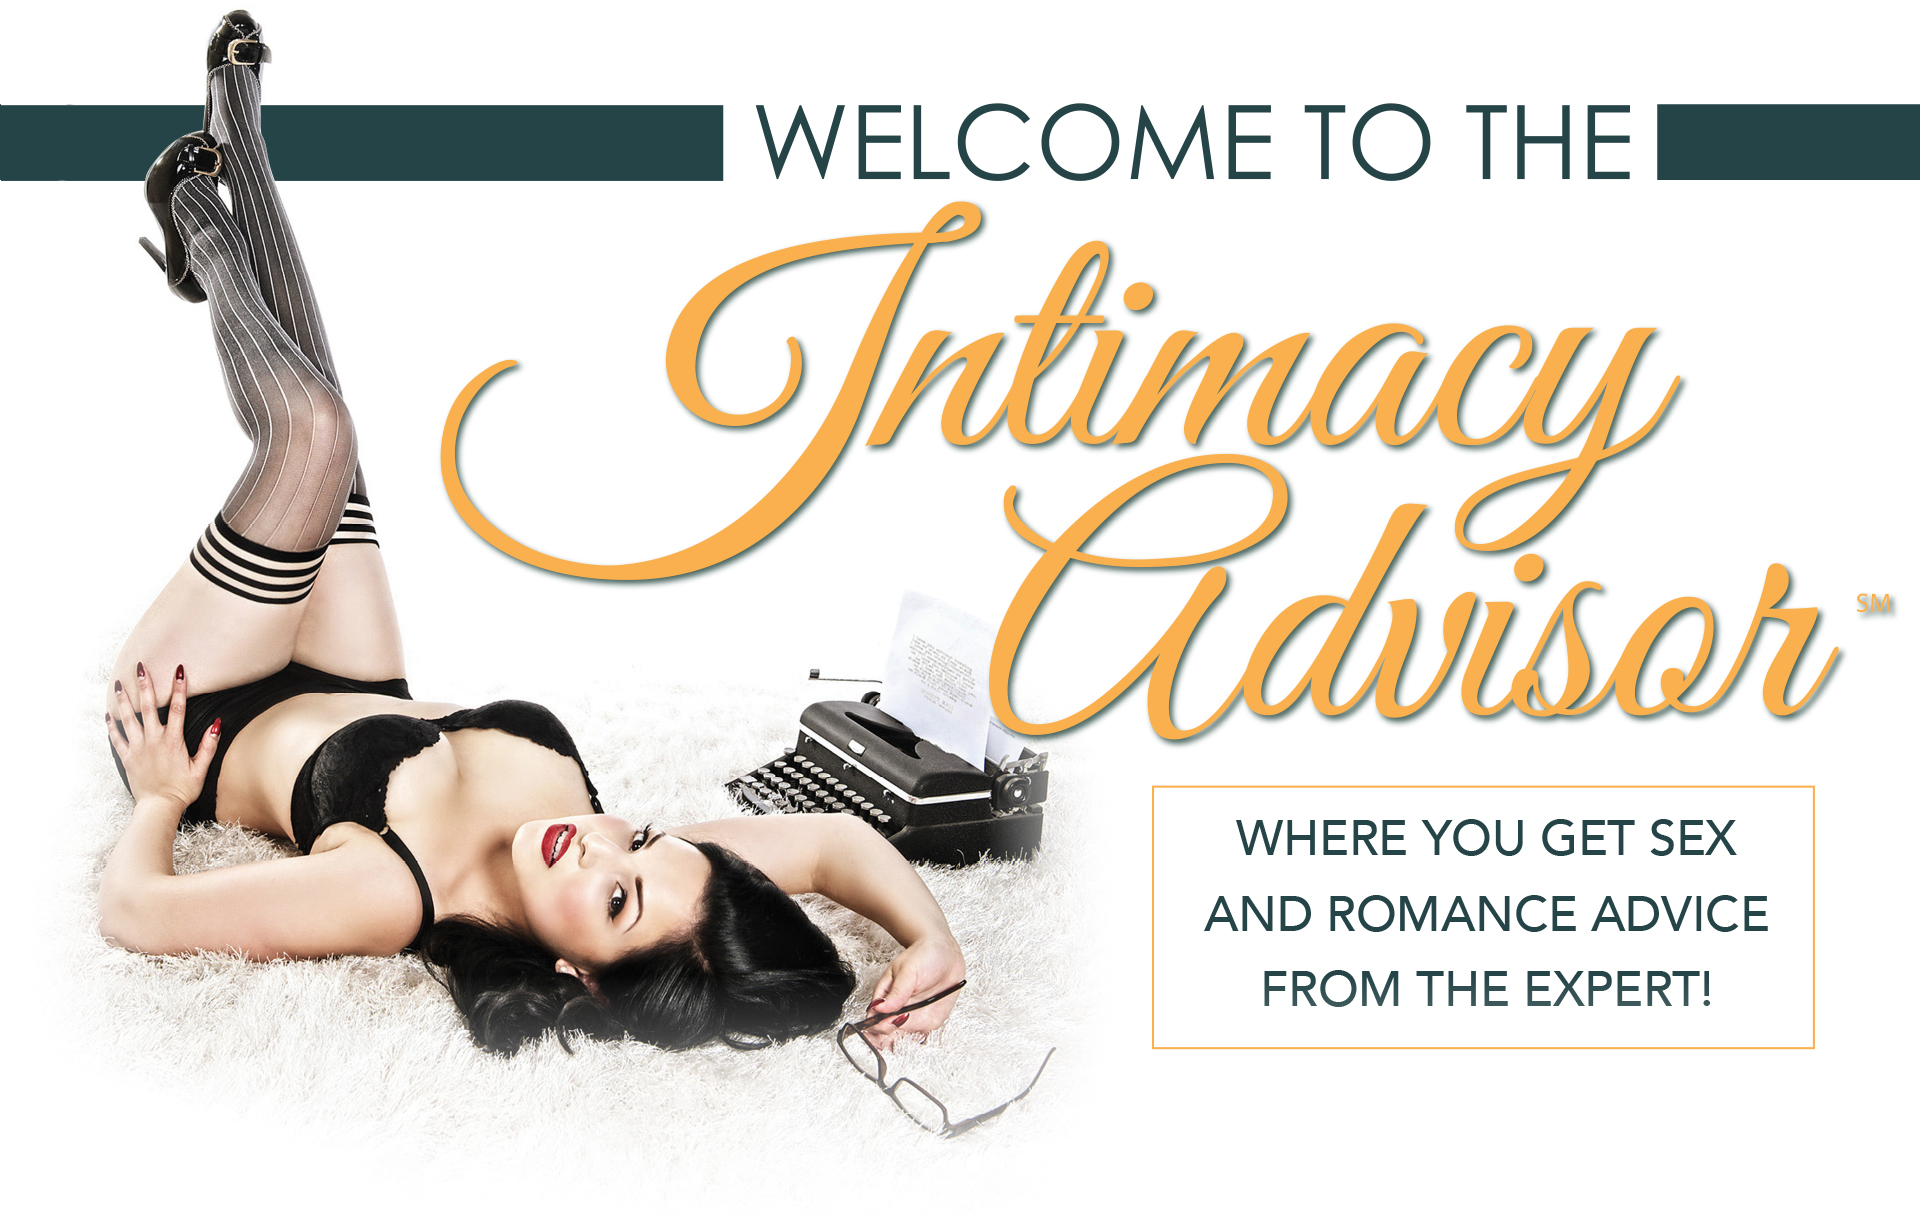 Check out the Intimacy Advisor!